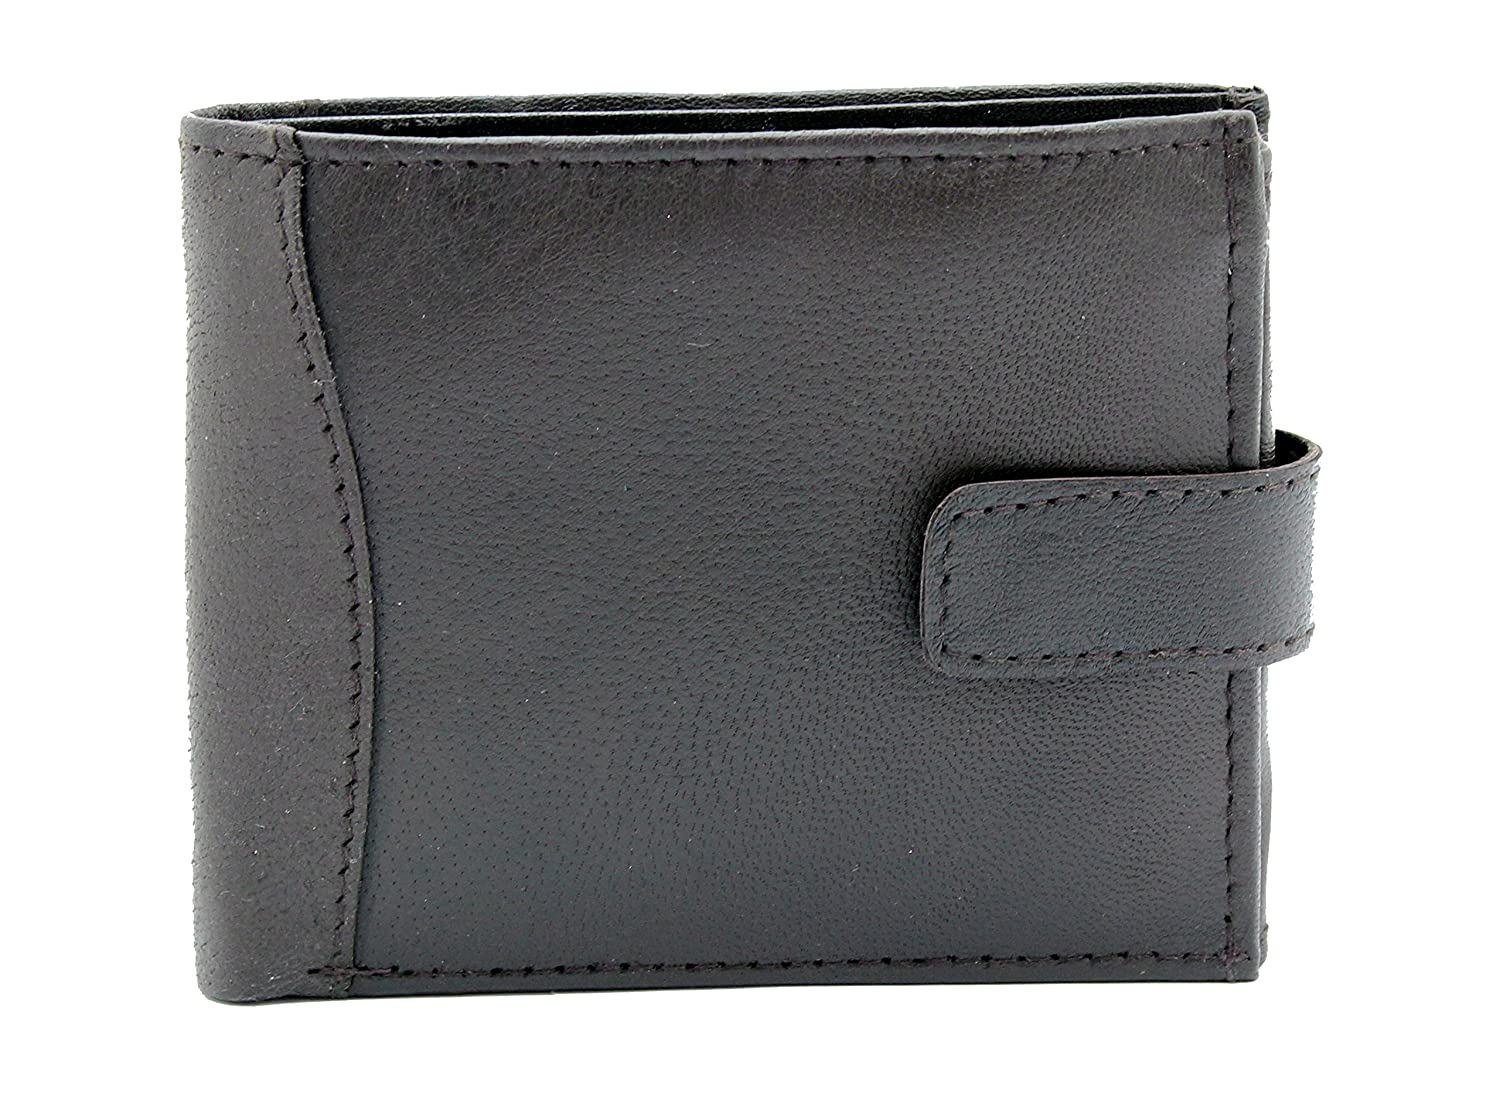 MENS SOFT GENUINE LEATHER WALLET CREDIT CARD SLOTS & COIN POCKET #340 RAS WALLETS